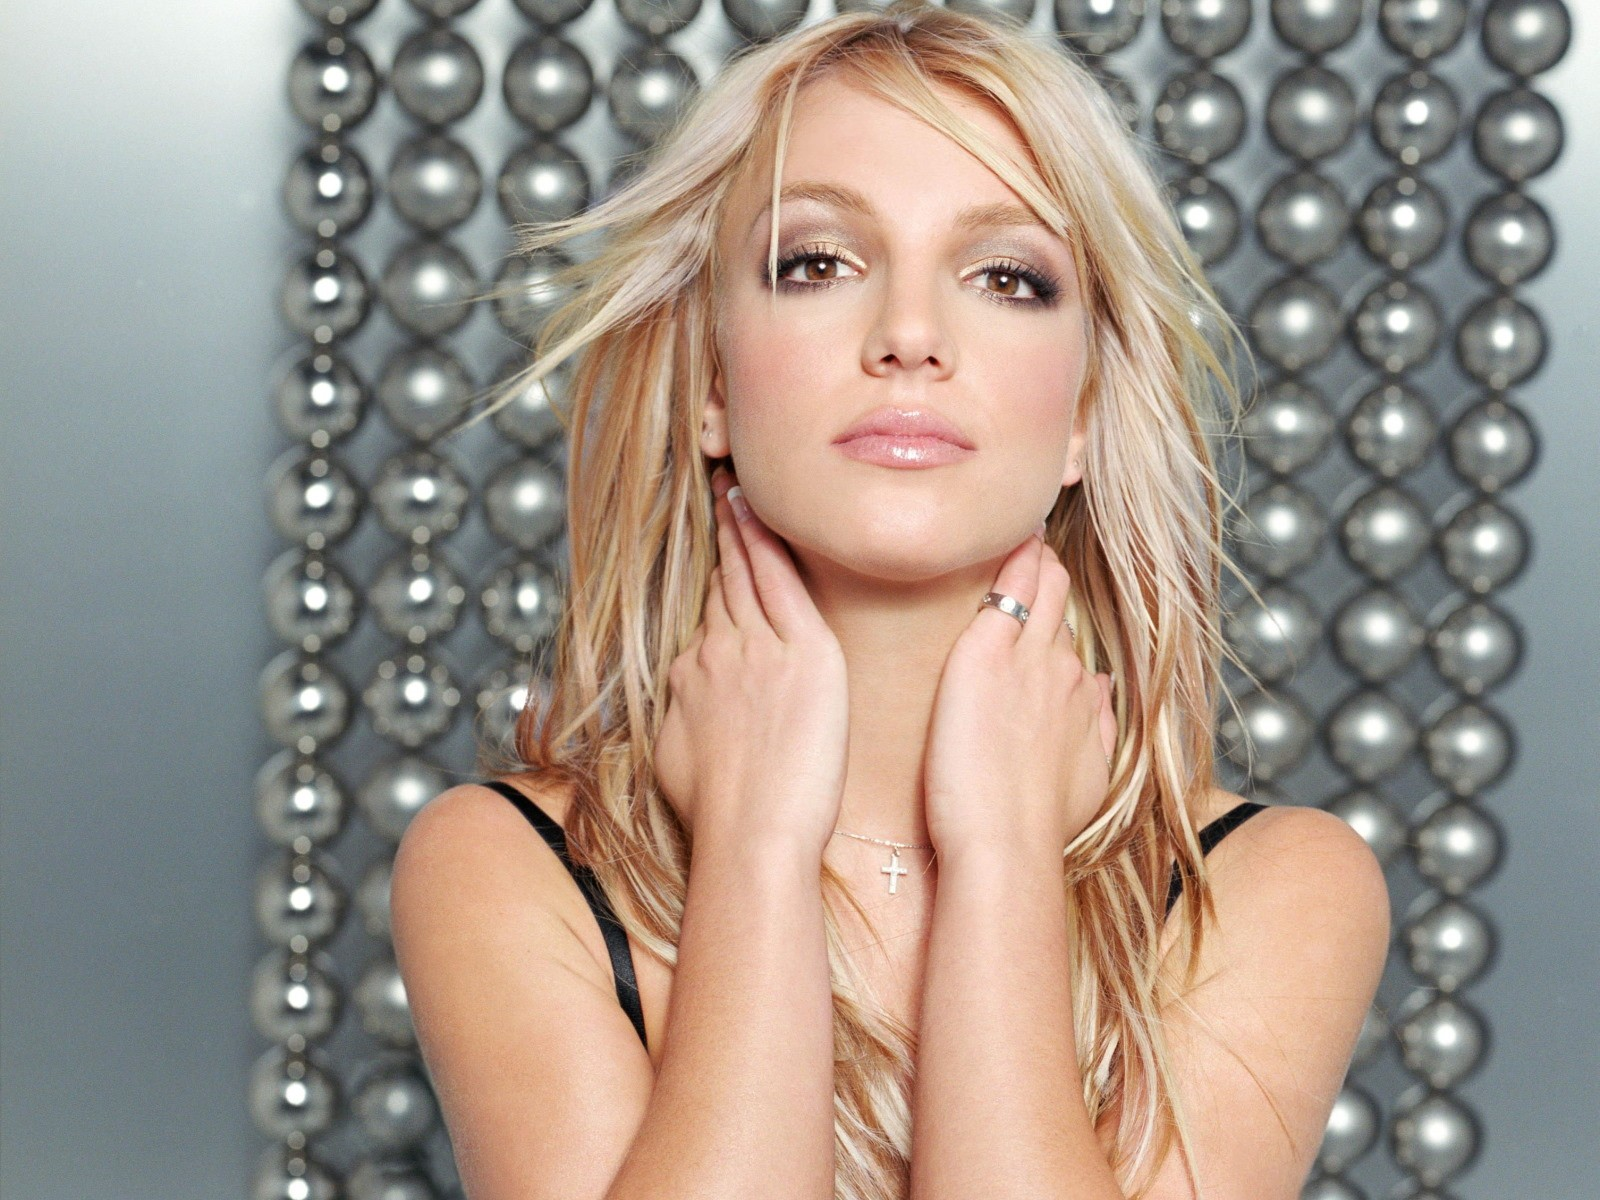 Britney Spears Pics Collection For Free Download | HD Wallpapers ...